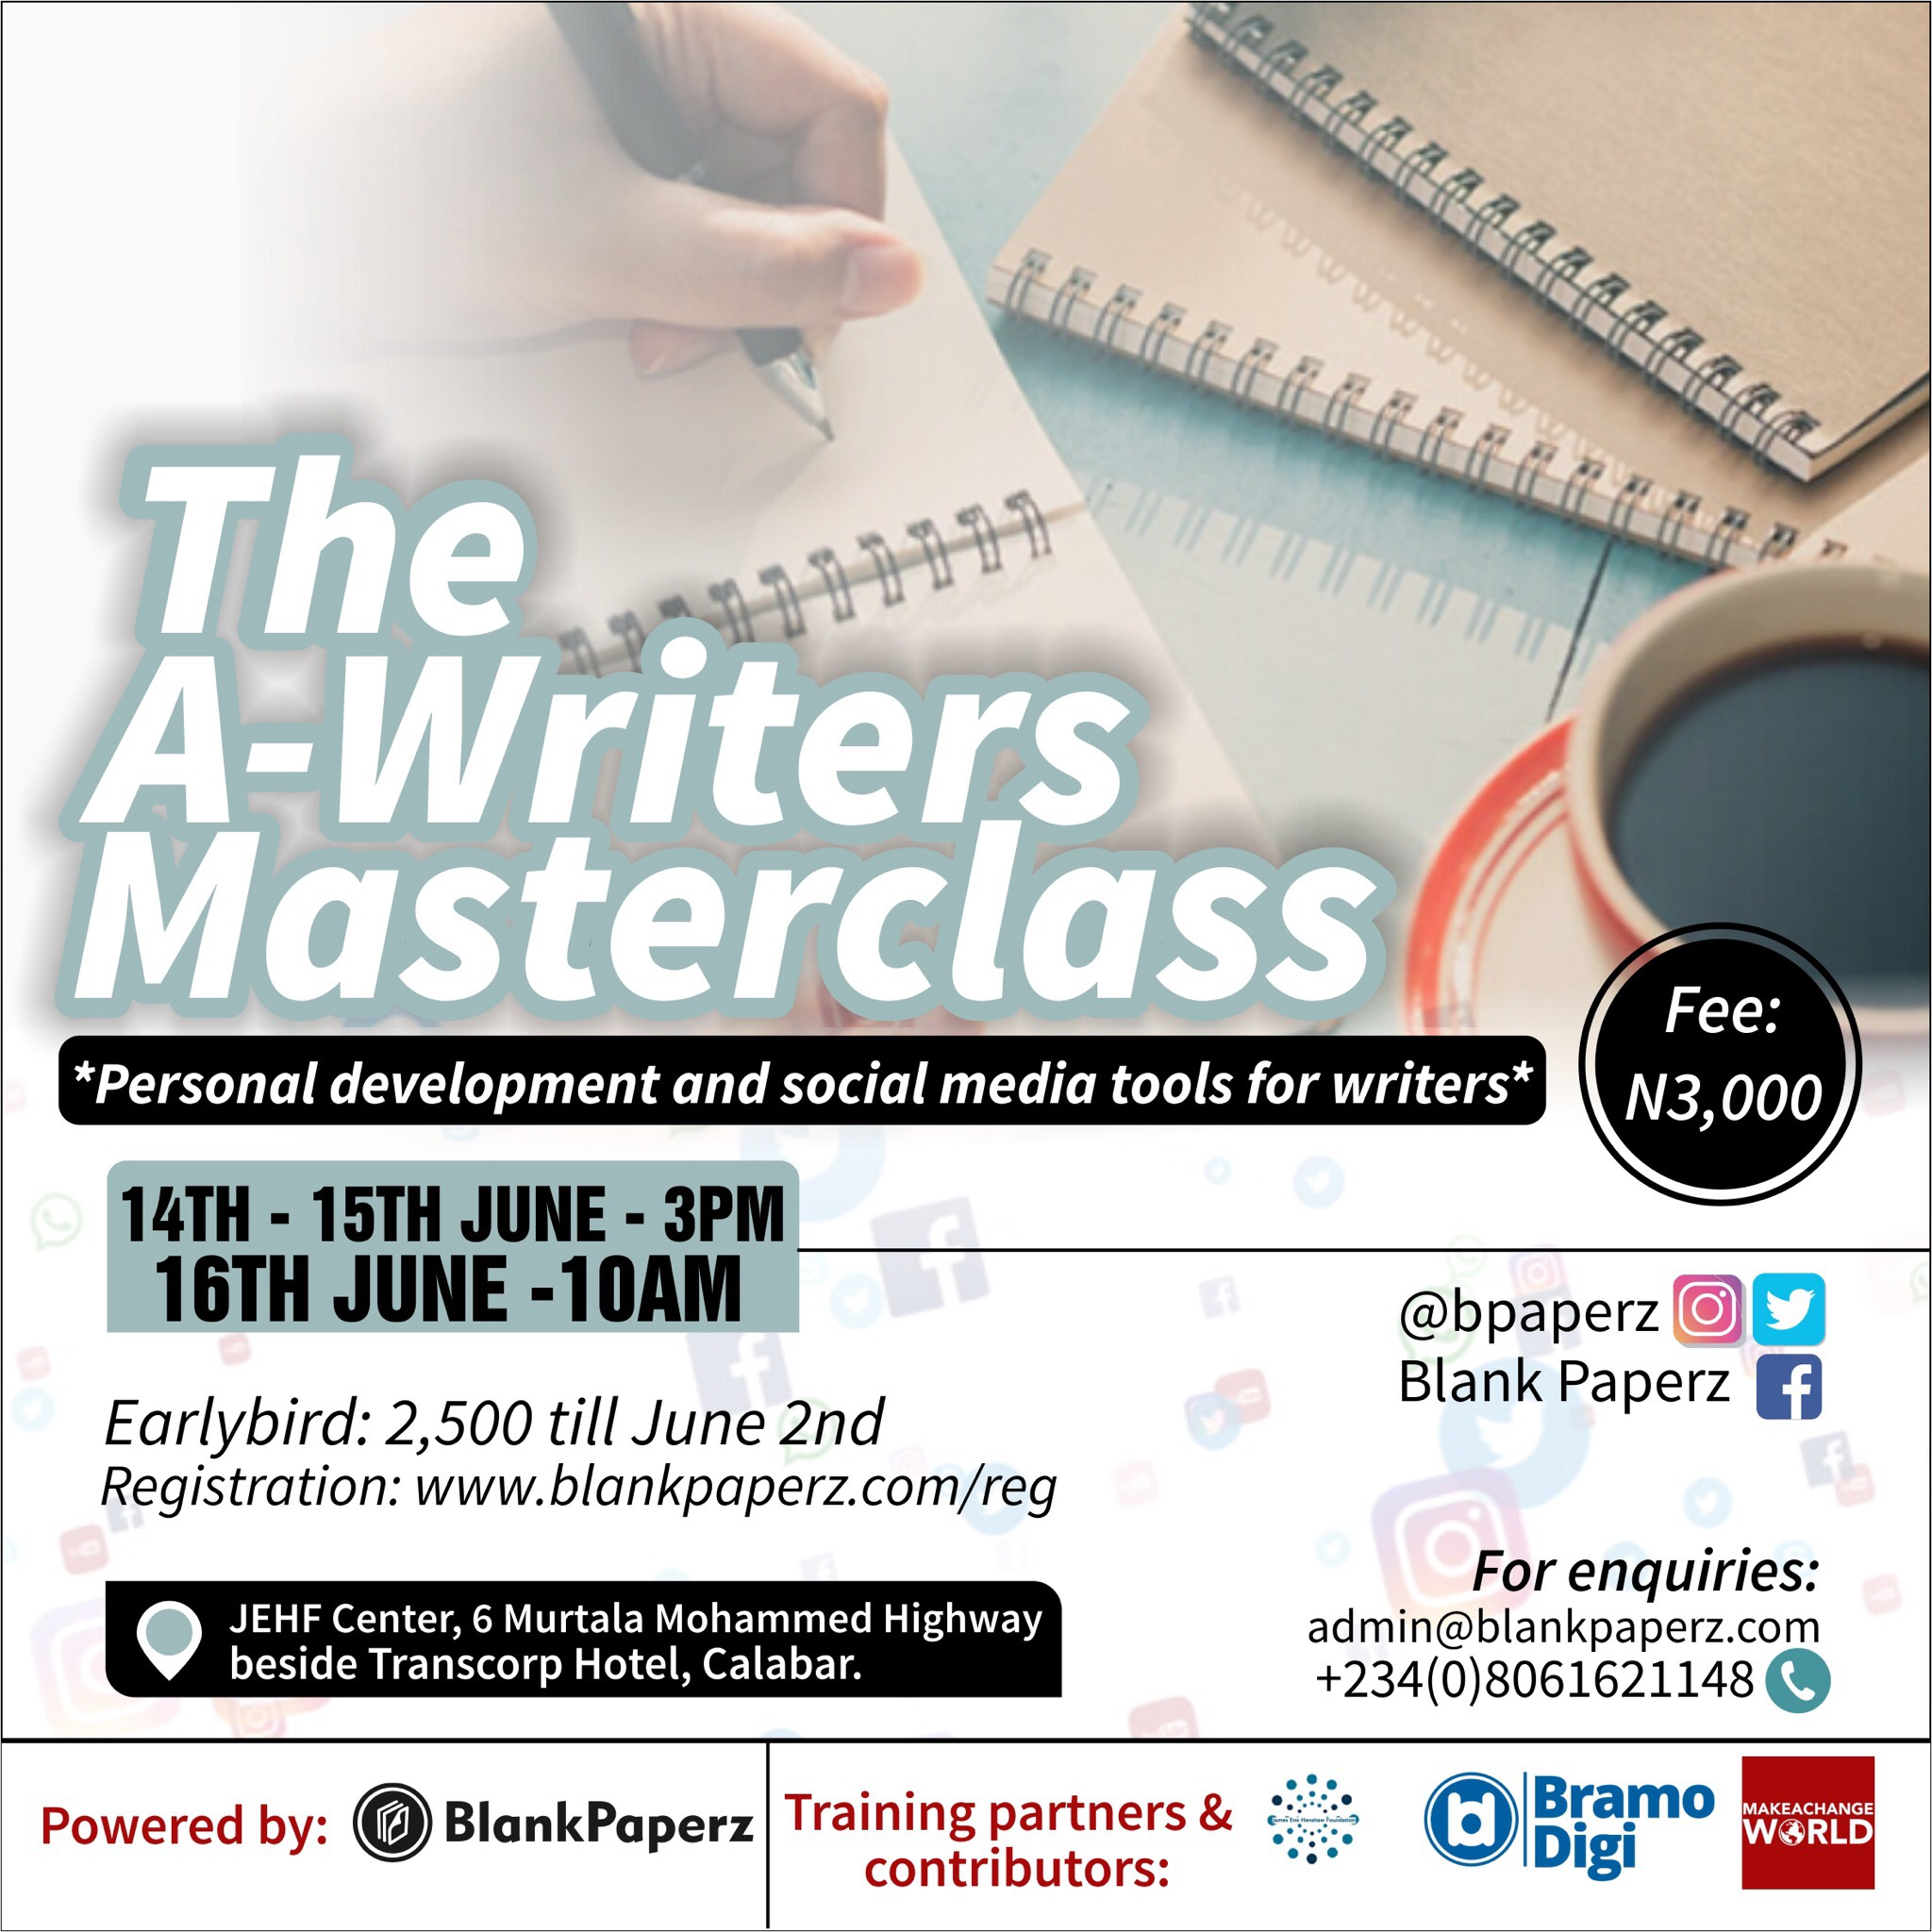 BlankPaperz Launches Powerful A-Writers Masterclass to Develop Young Writers in Calabar